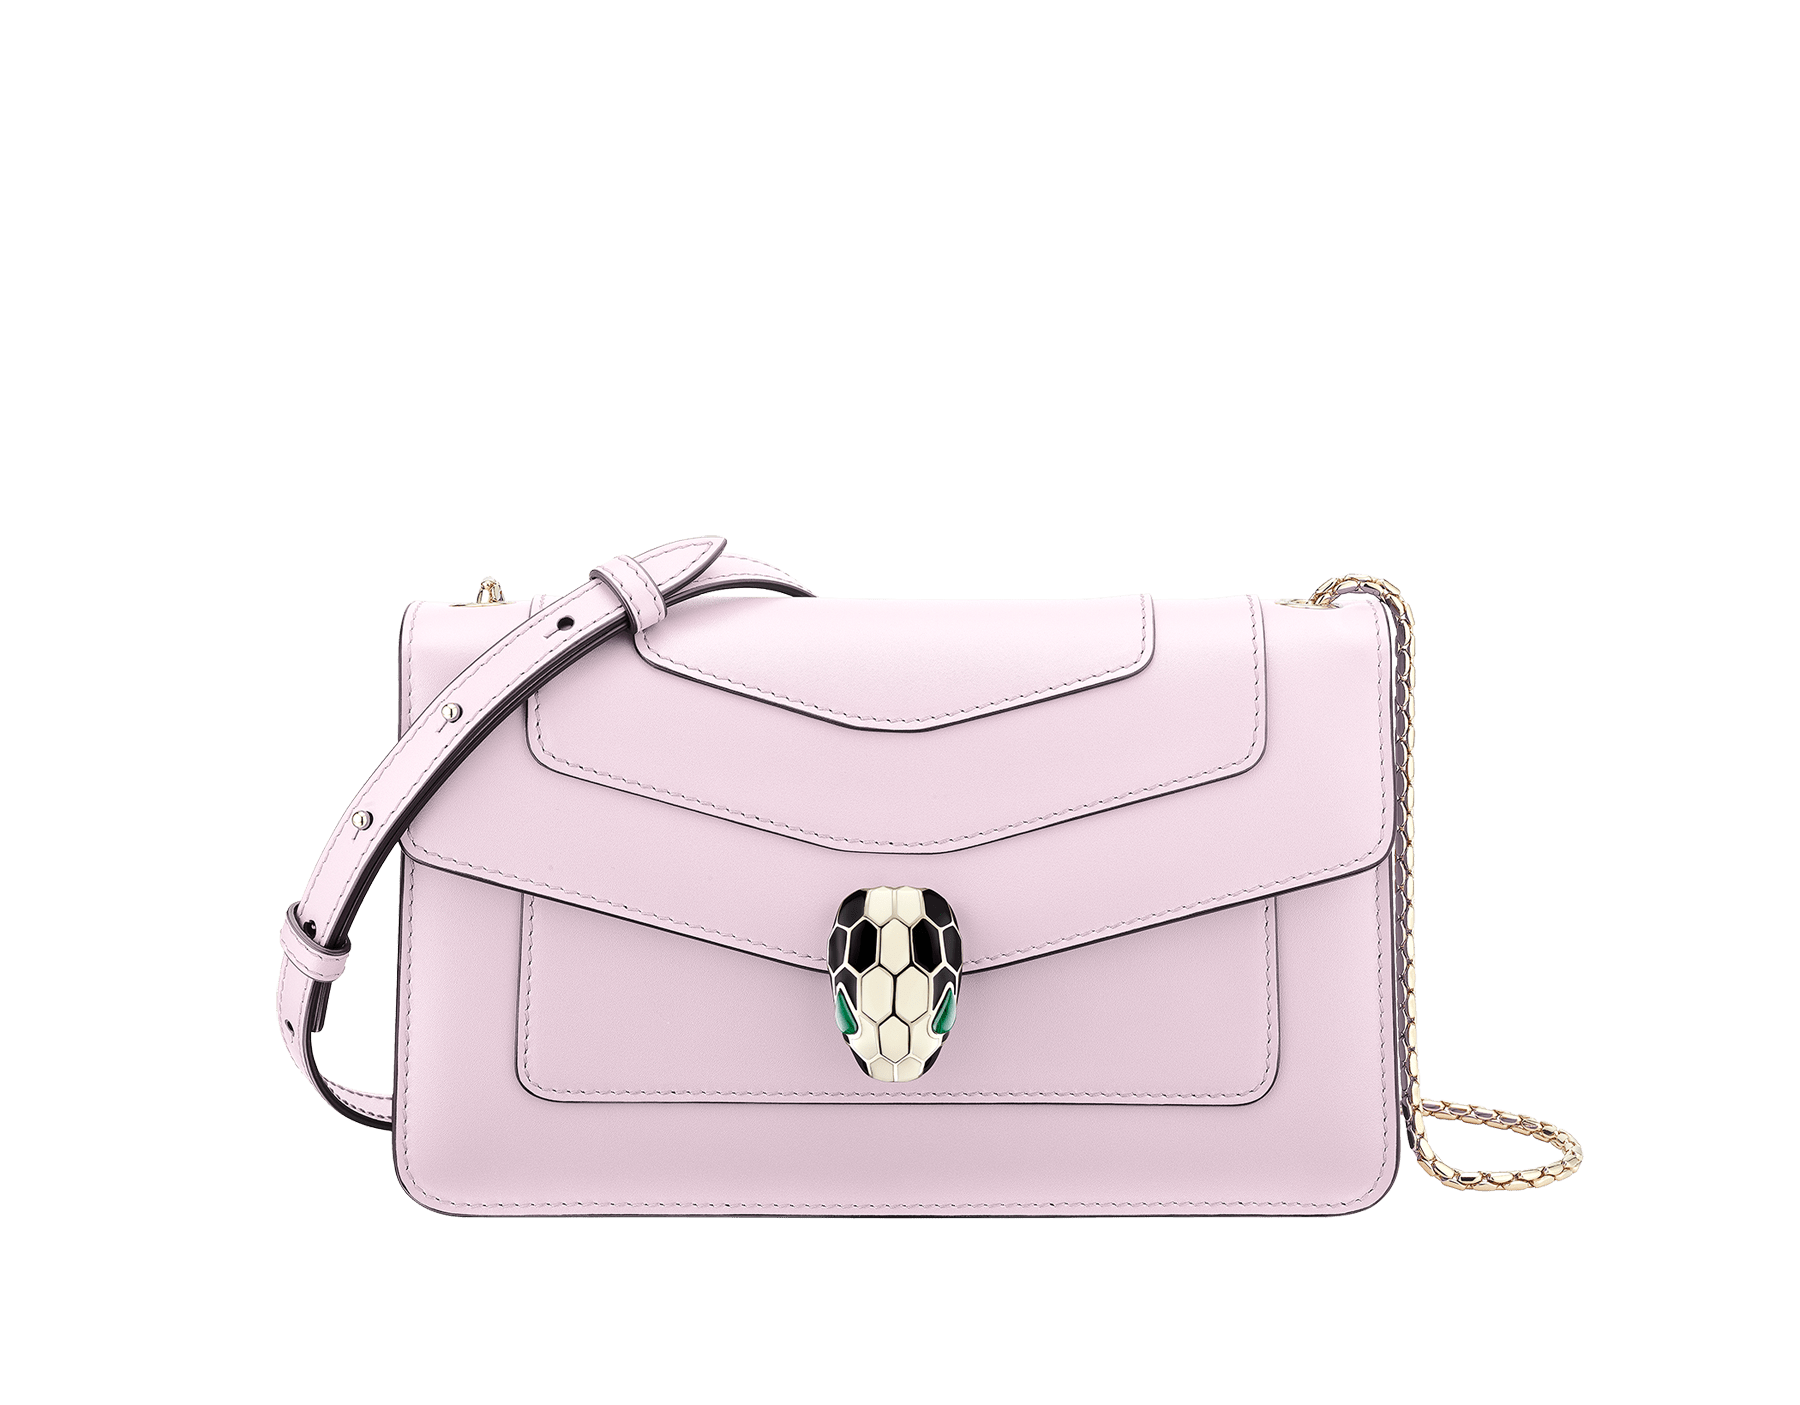 Serpenti Forever crossbody bag in rosa di francia calf leather. Iconic snakehead closure in light gold plated brass embellished with black and white enamel and green malachite eyes. 288715 image 1